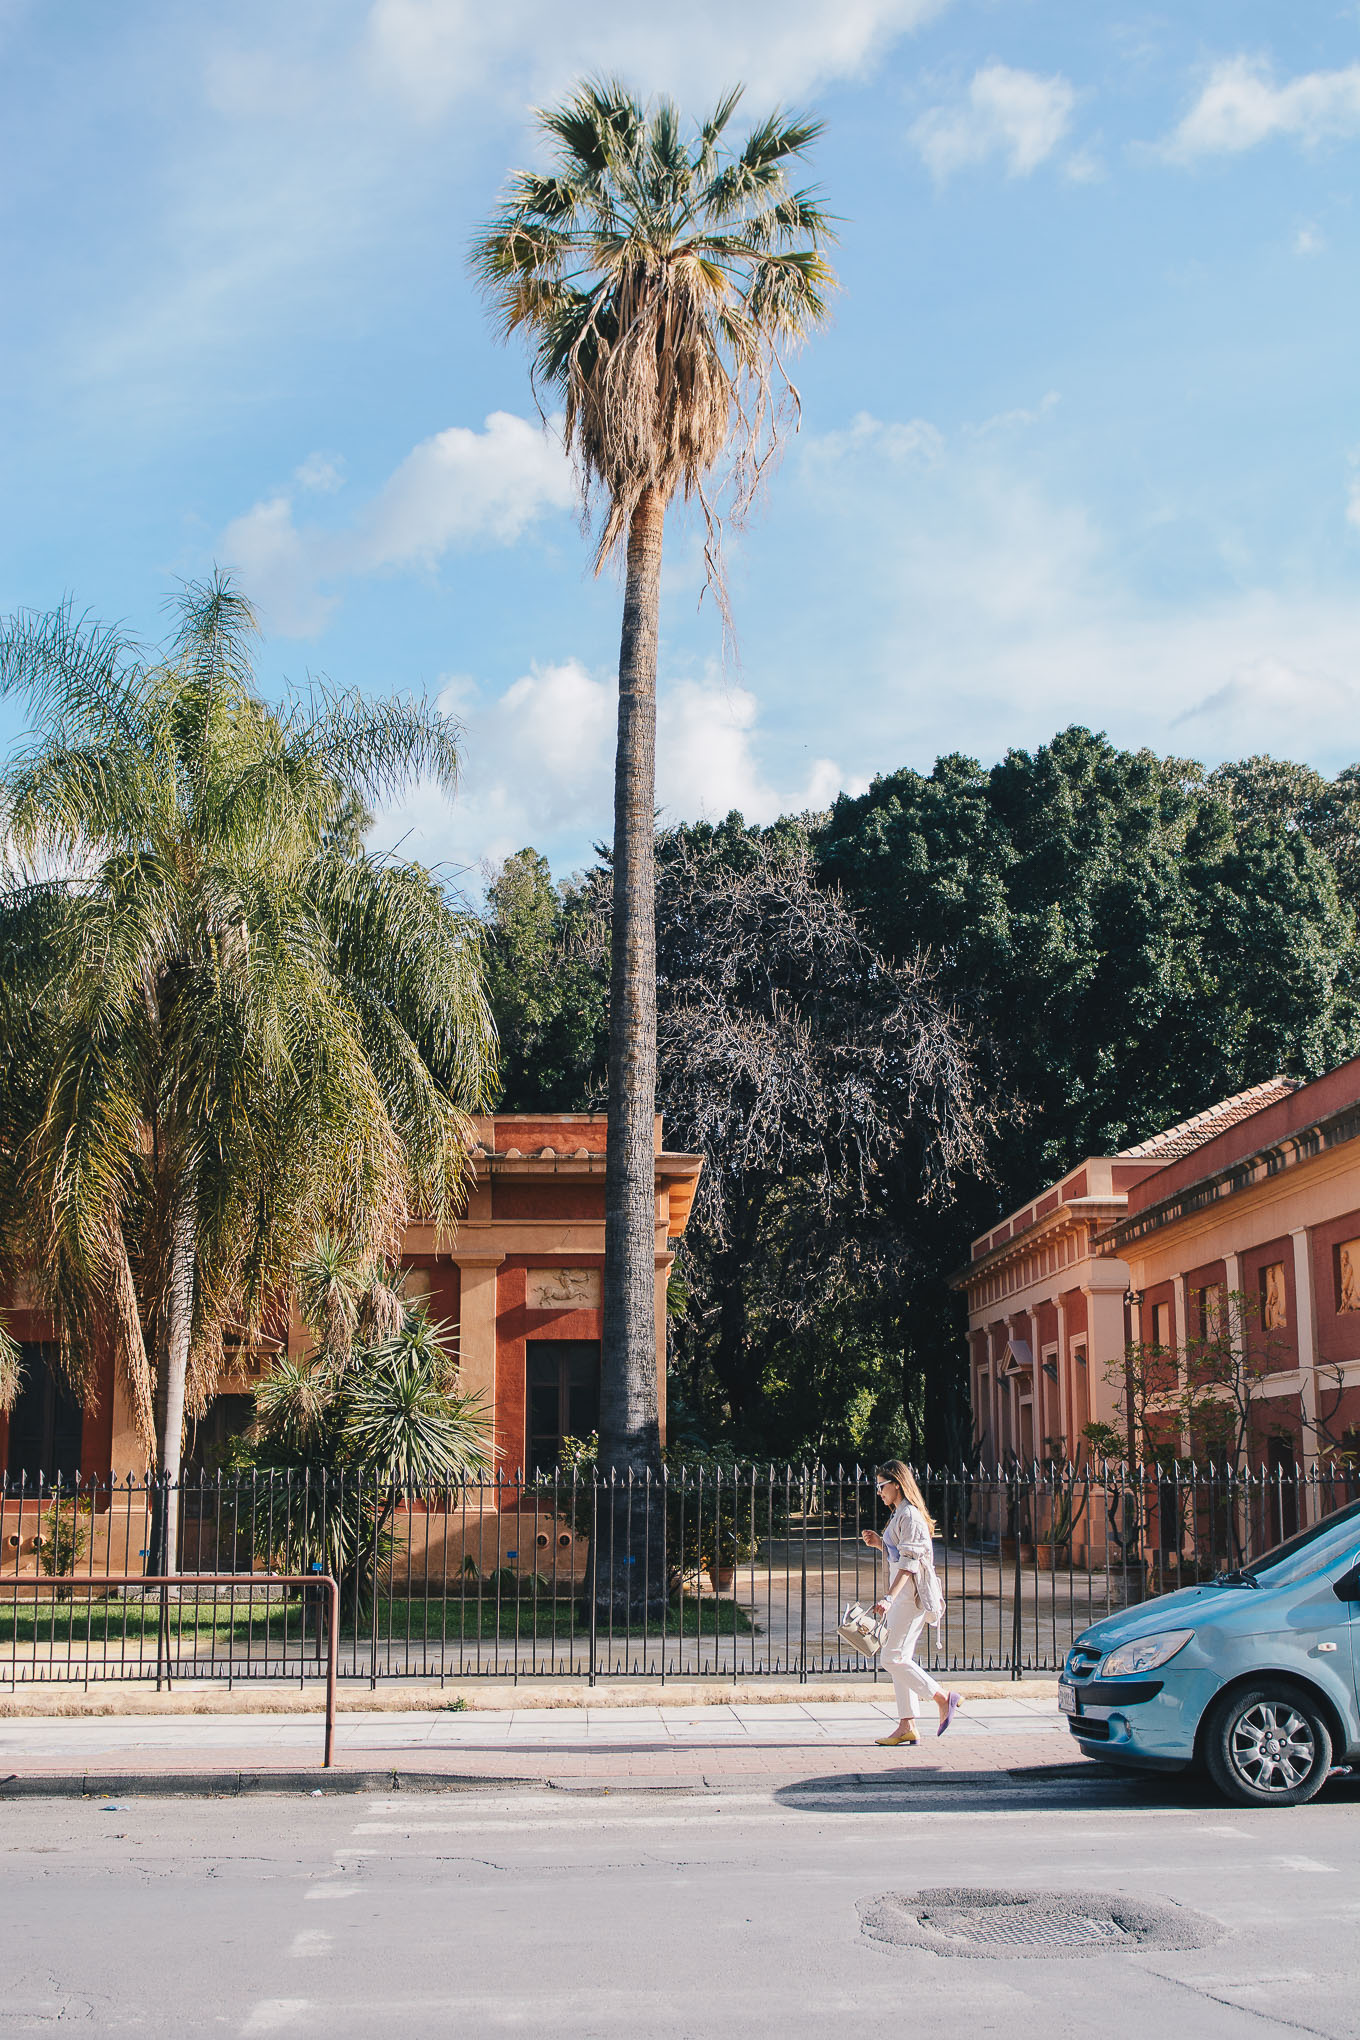 Botanical garden of palermo